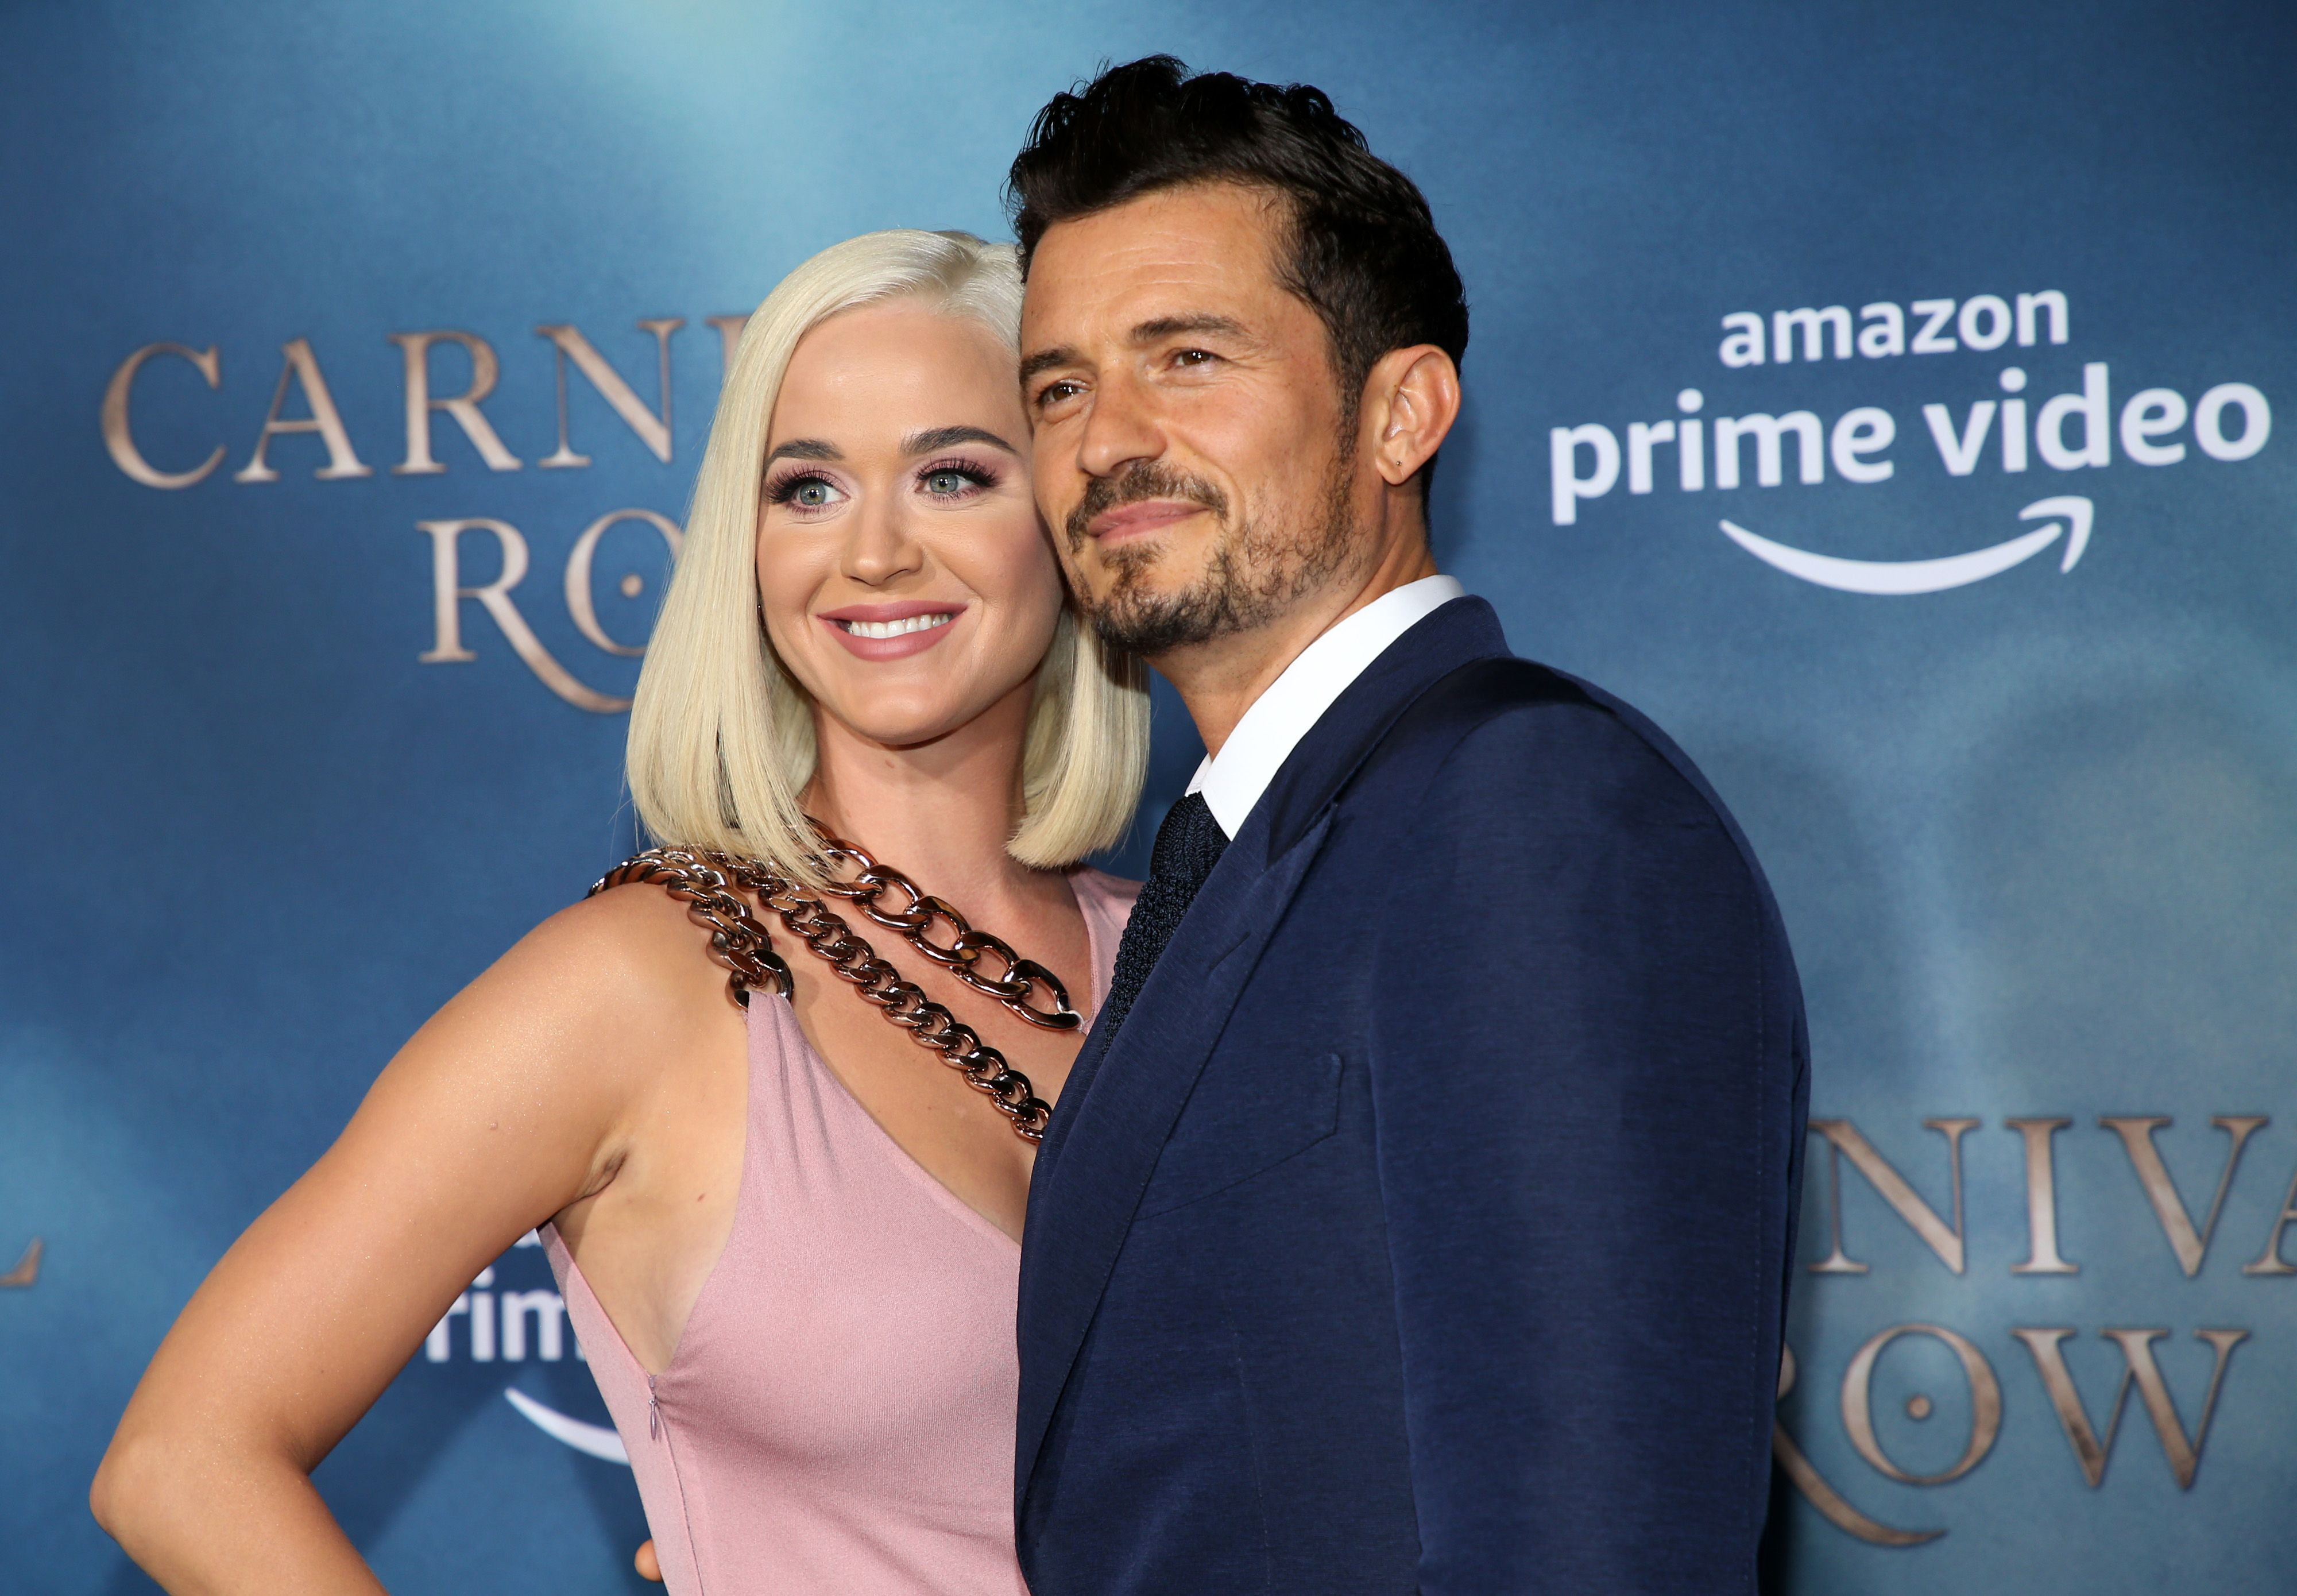 Katy Perry and Orlando Bloom at the Carnival Row premiere / Getty Images